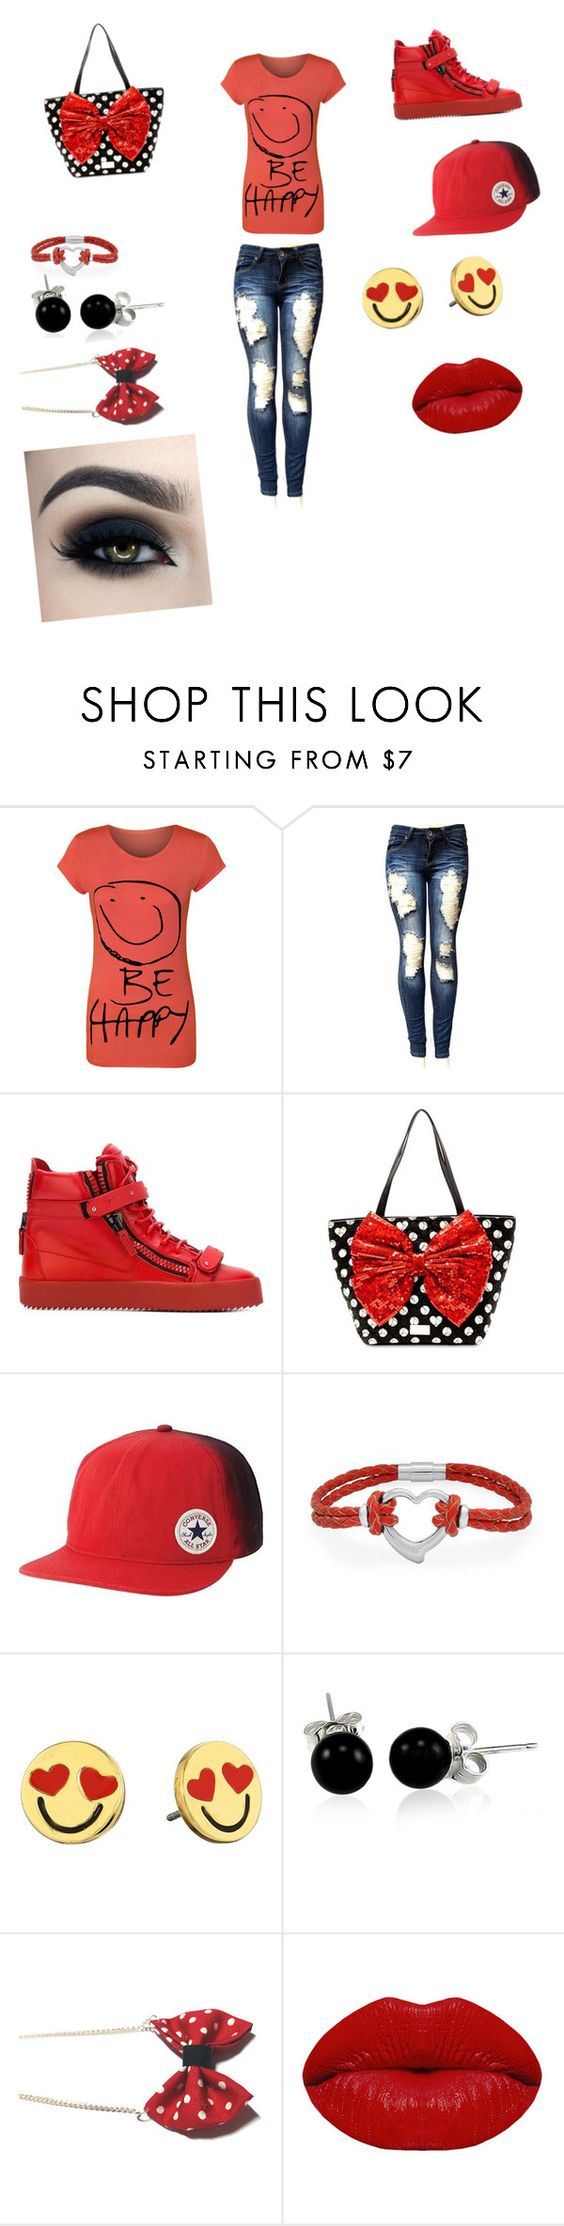 """""""stargazing w my pickle dyl"""" by vyesica-yv on Polyvore featuring WearAll, Giuseppe Zanotti, Betsey Johnson, Converse, Bling Jewelry, Kate Spade and Winky Lux"""